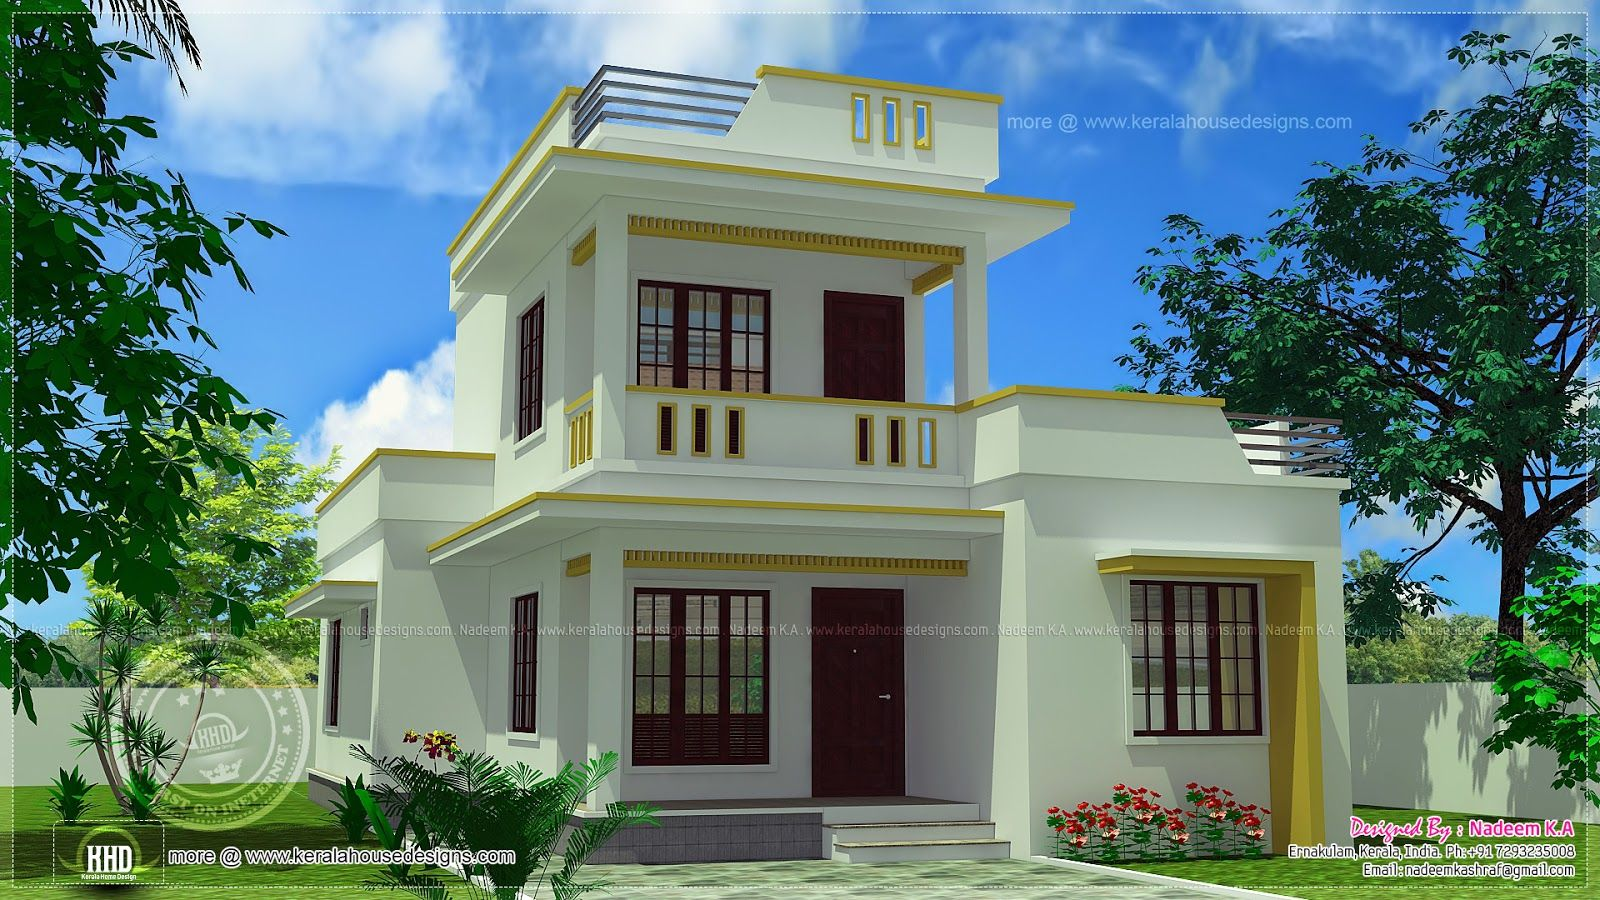 Roof home design feet kerala plans simple modern house for Basic house design